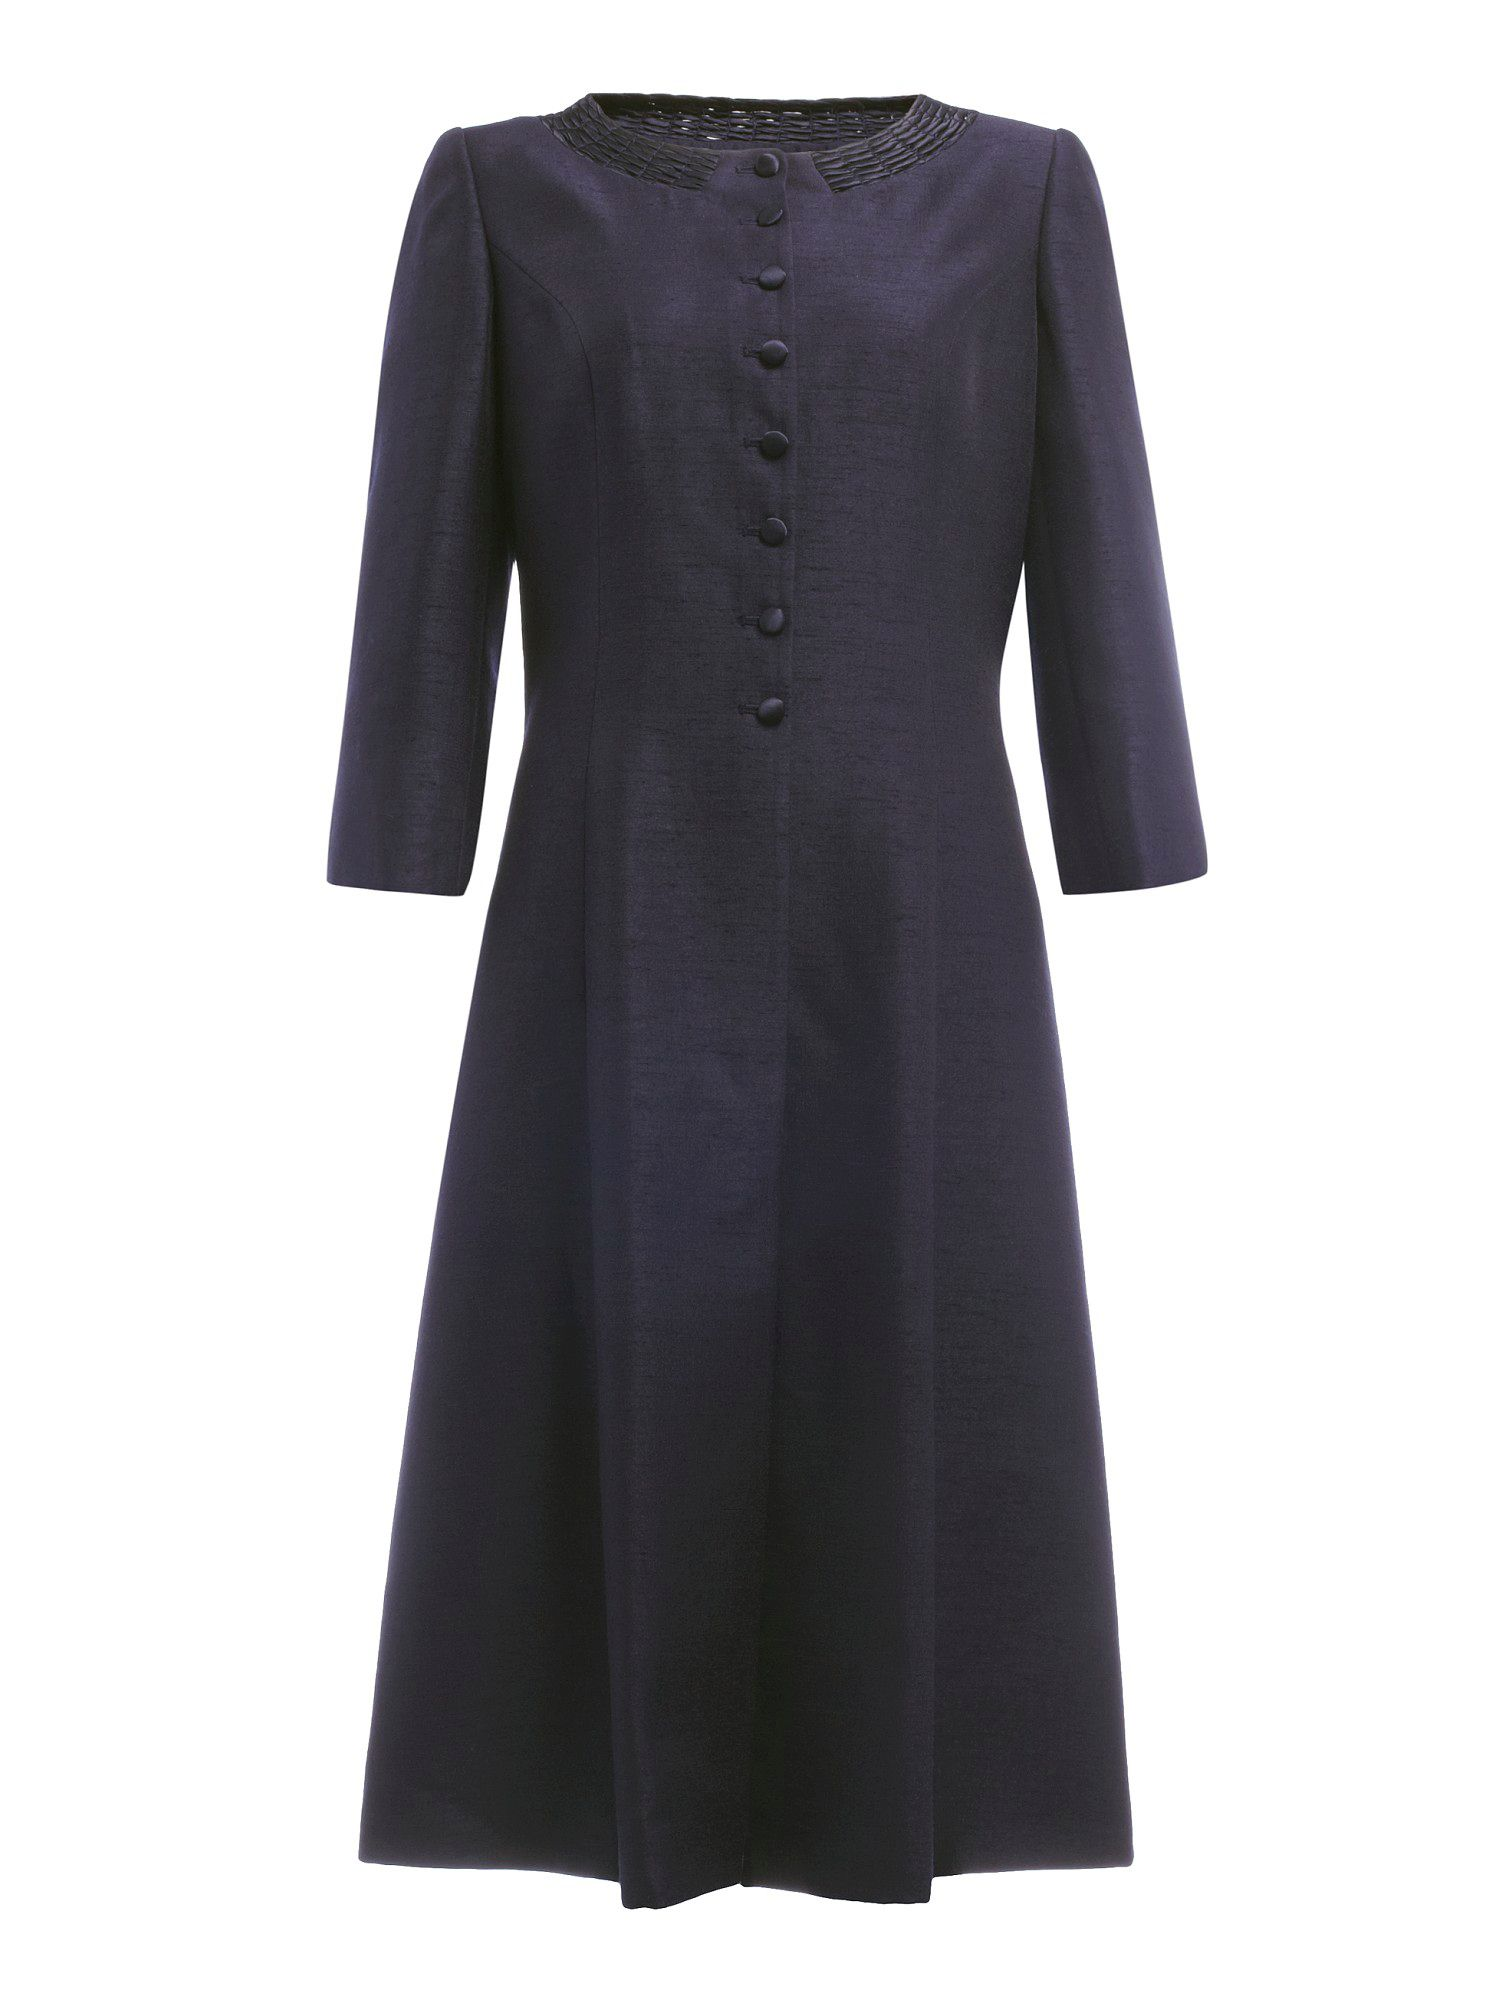 Monique longline dress coat